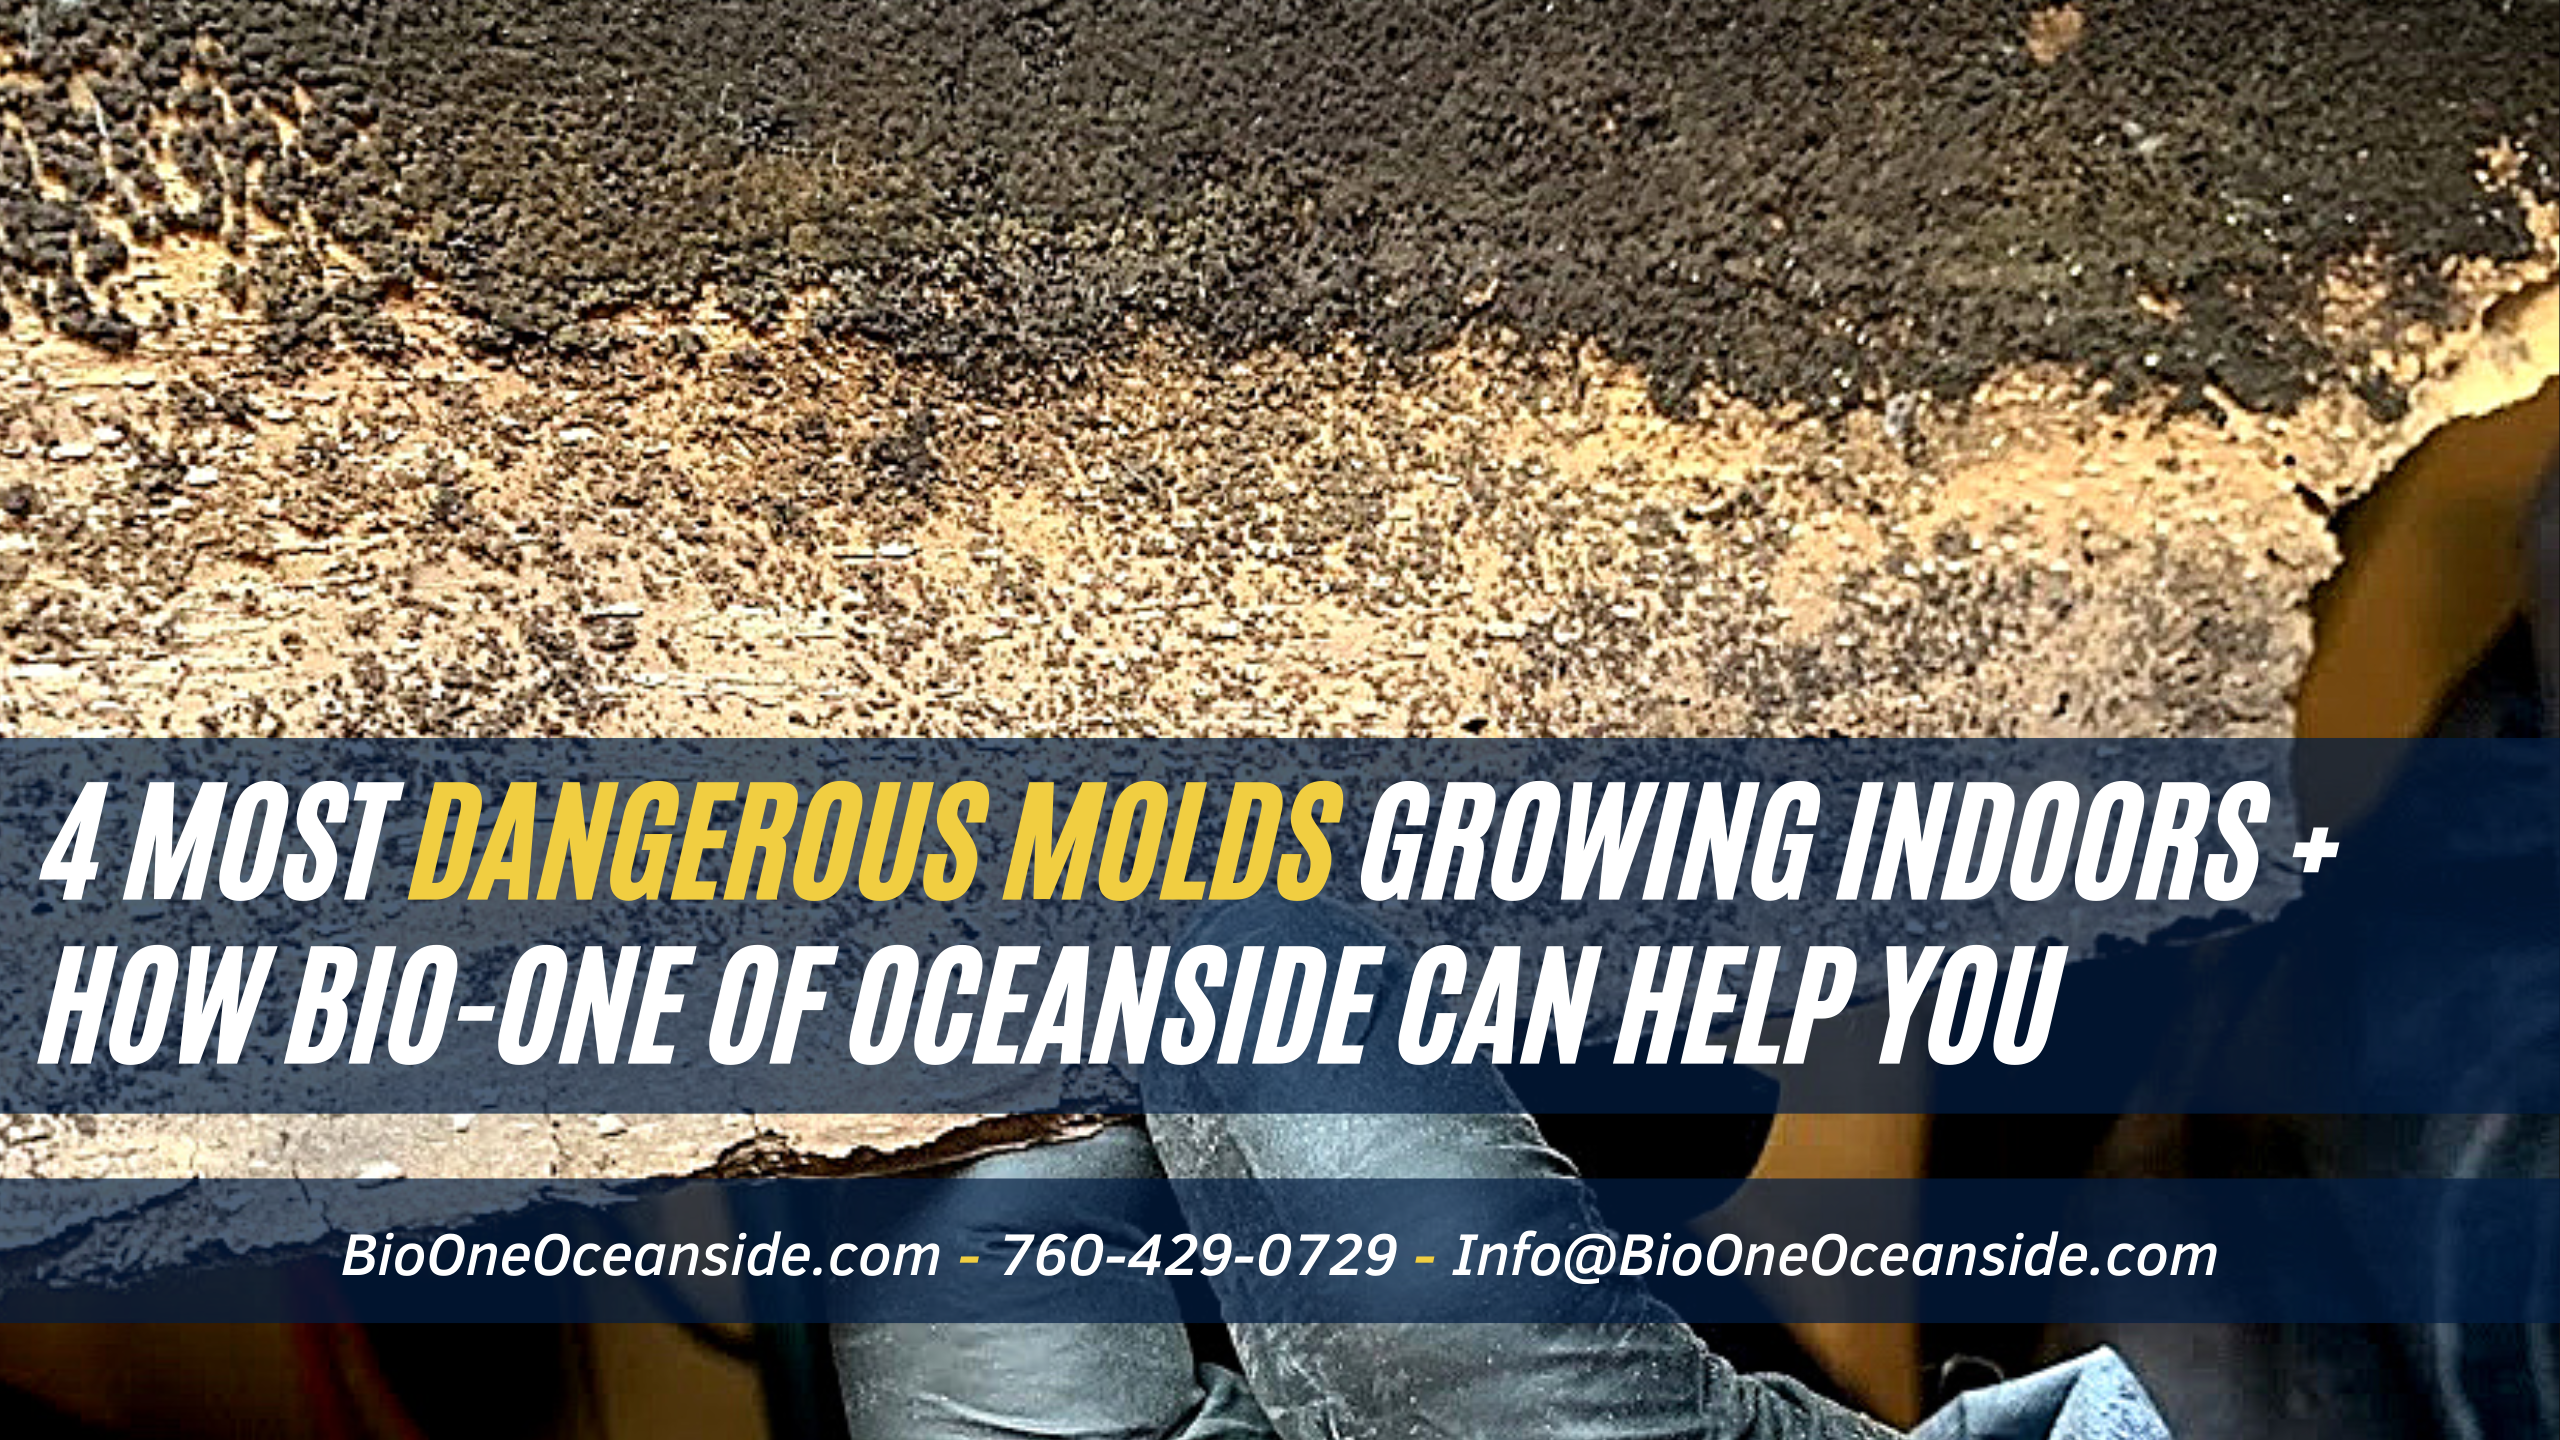 4 most dangerous molds growing indoors + How Bio-One can help you remove them!